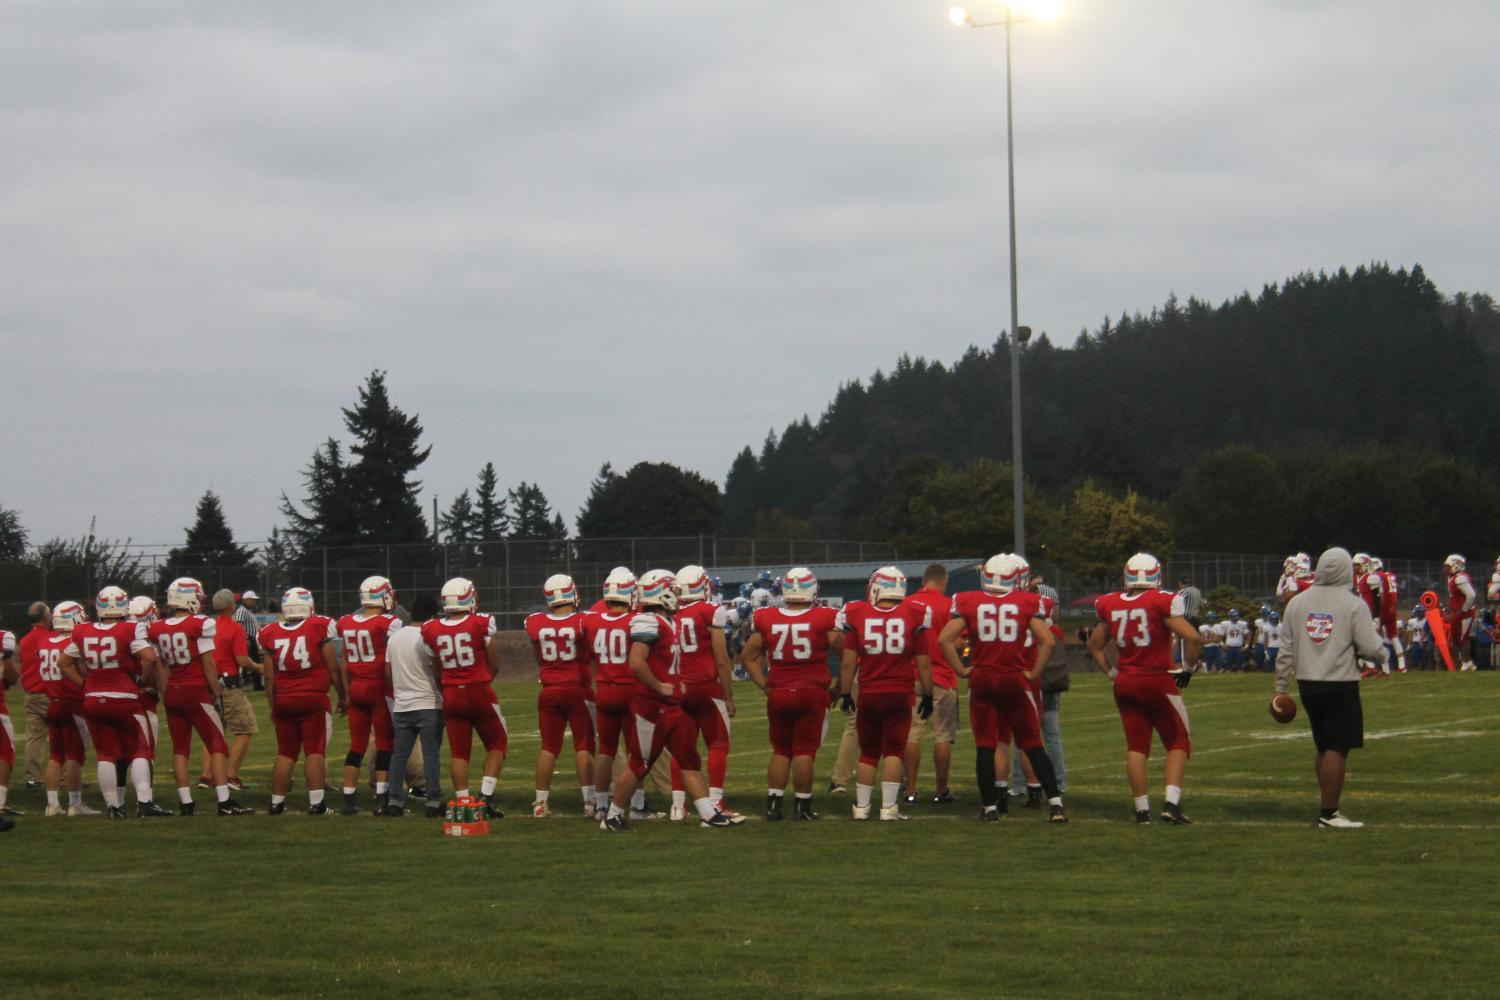 Several+Eagle+football+players+look+on+anxiously+as+the+team+plays+last+week+against+Newberg+in+a+56-27+loss+to+the+Tigers.